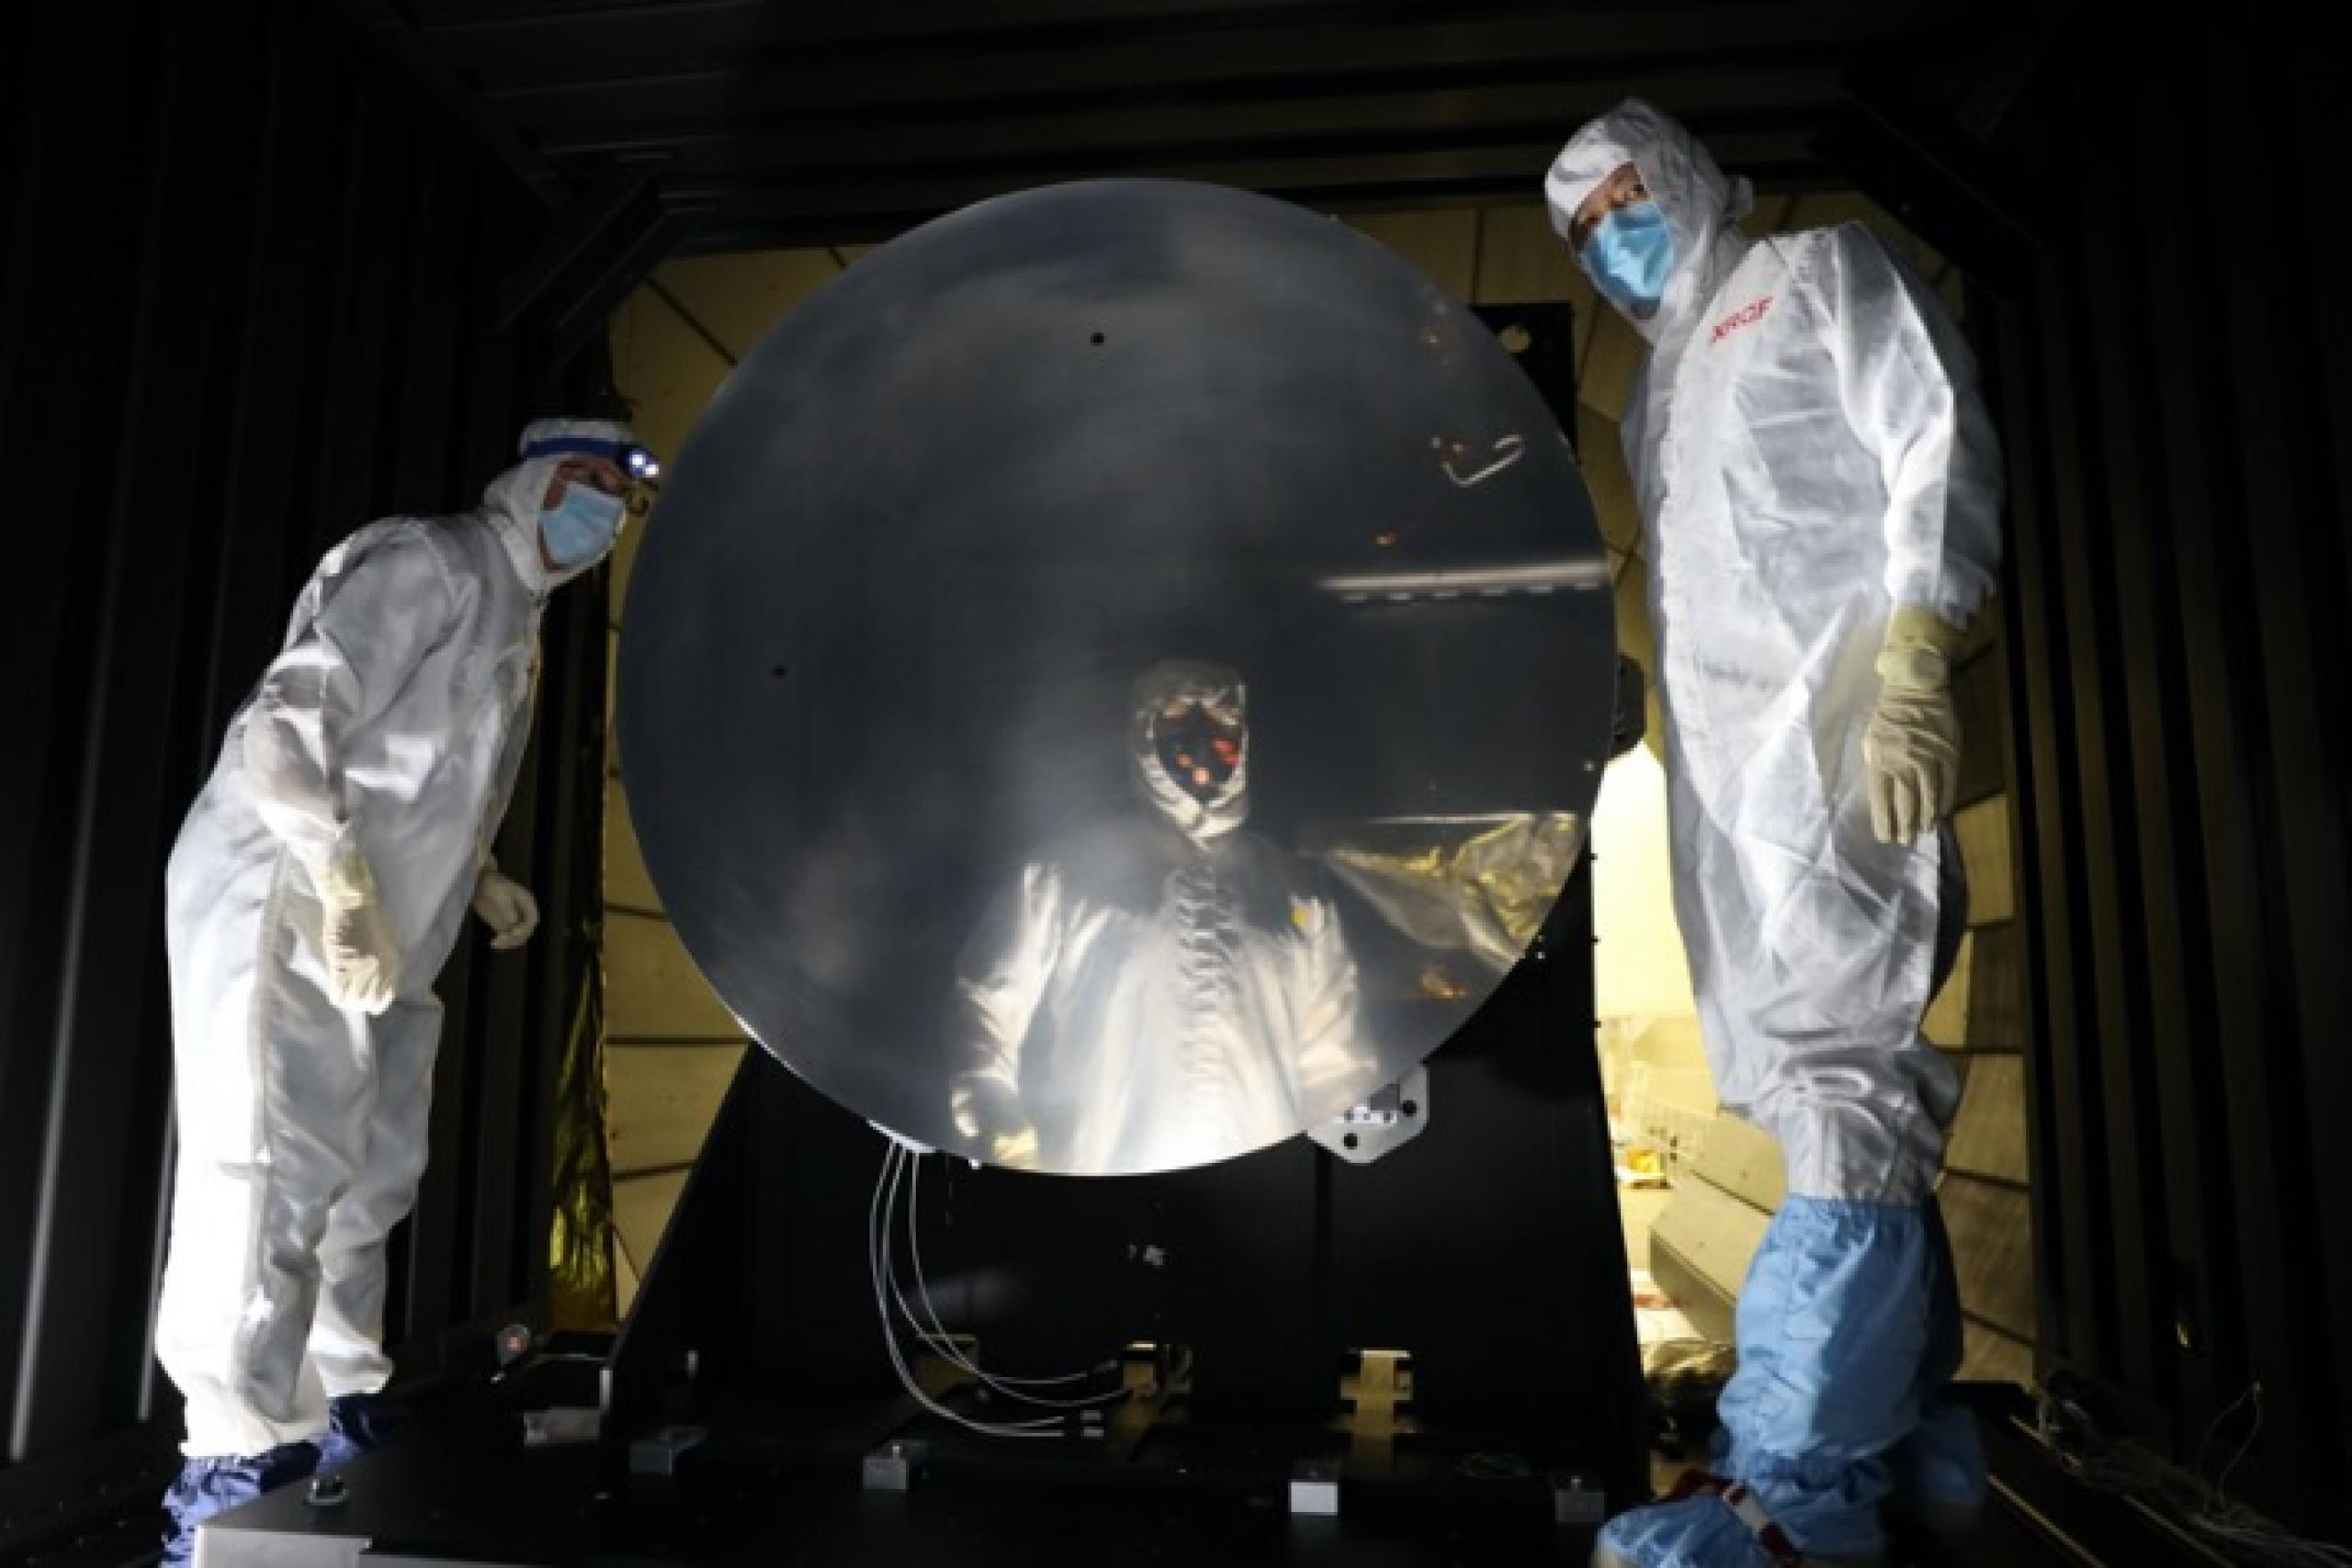 Photo of two male scientists in lab suits next to a large scale mirror and one scientist reflected in the mirror.